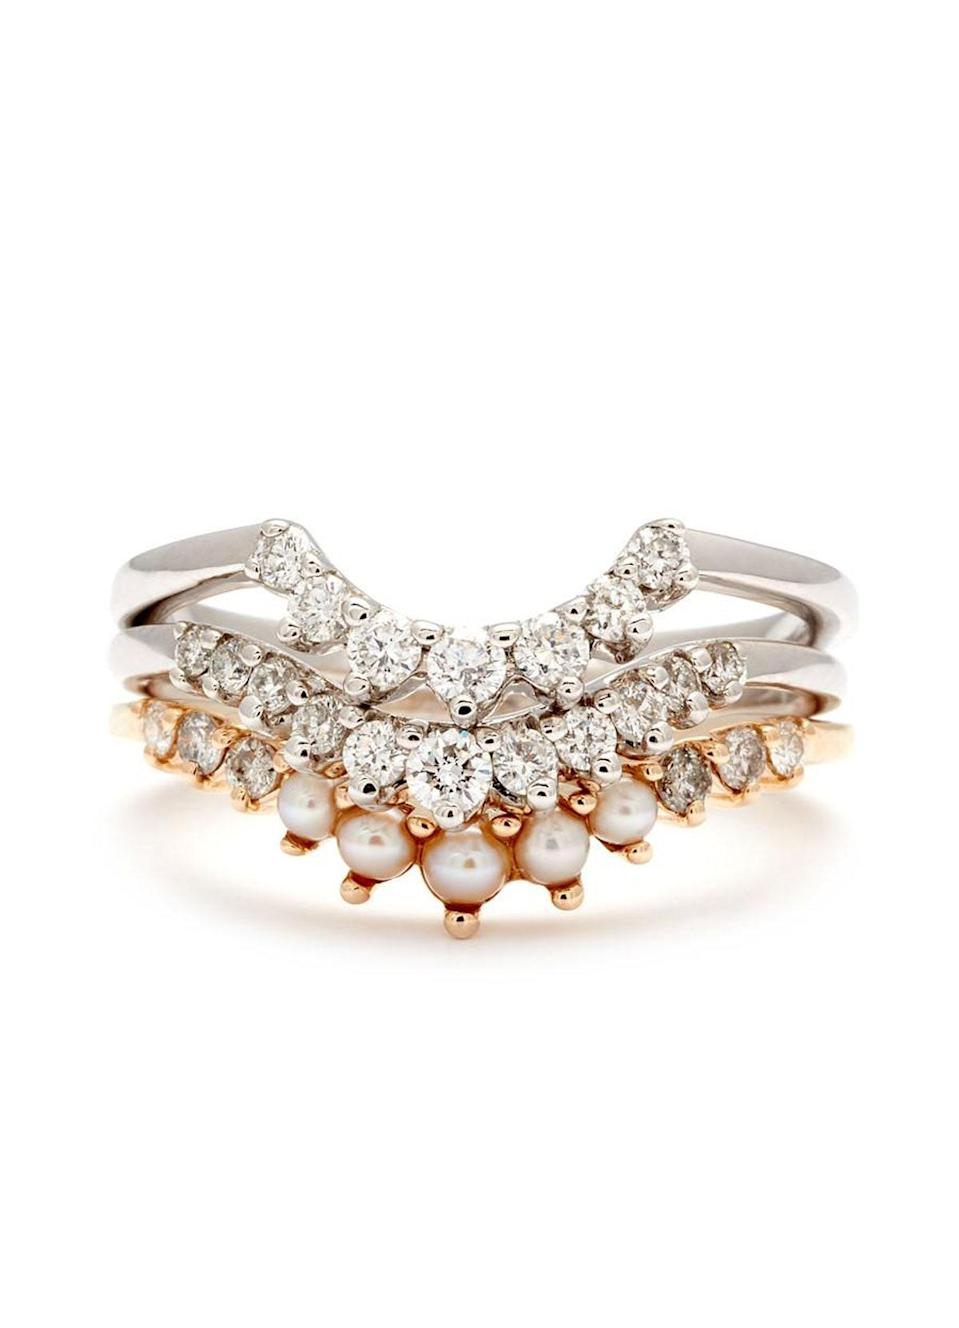 """Rotating through a few different nesting bands is a great way to express your personal style or change the look of your engagement ring. $4250, Anna Sheffield. <a href=""""https://www.annasheffield.com/collections/nesting/products/nesting-suite-no-08"""" rel=""""nofollow noopener"""" target=""""_blank"""" data-ylk=""""slk:Get it now!"""" class=""""link rapid-noclick-resp"""">Get it now!</a>"""